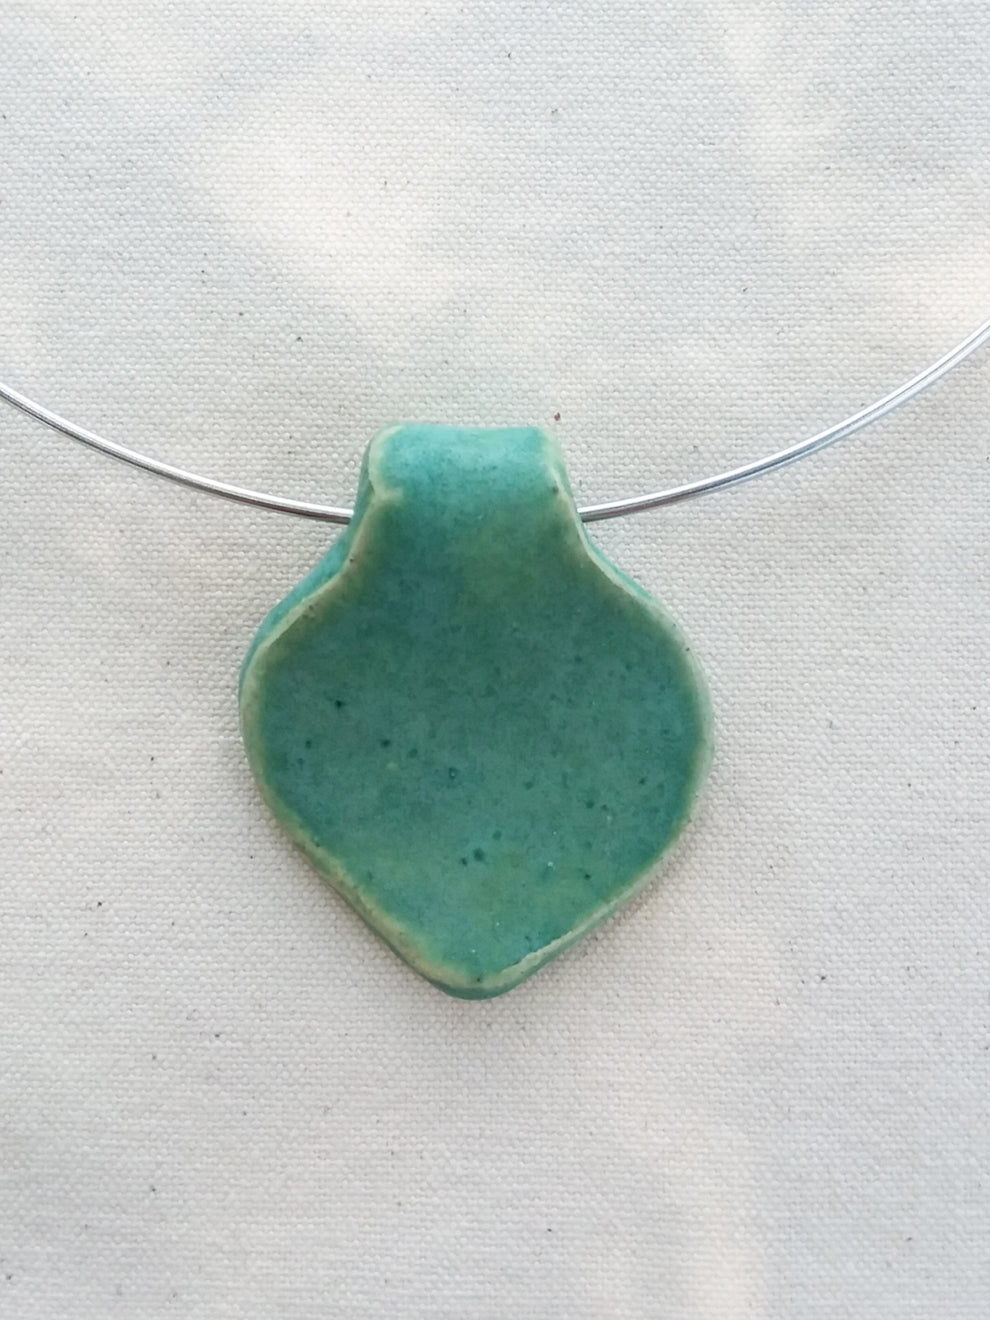 Necklace- Heart Inspired Ceramic Pendant on Hoop Necklace